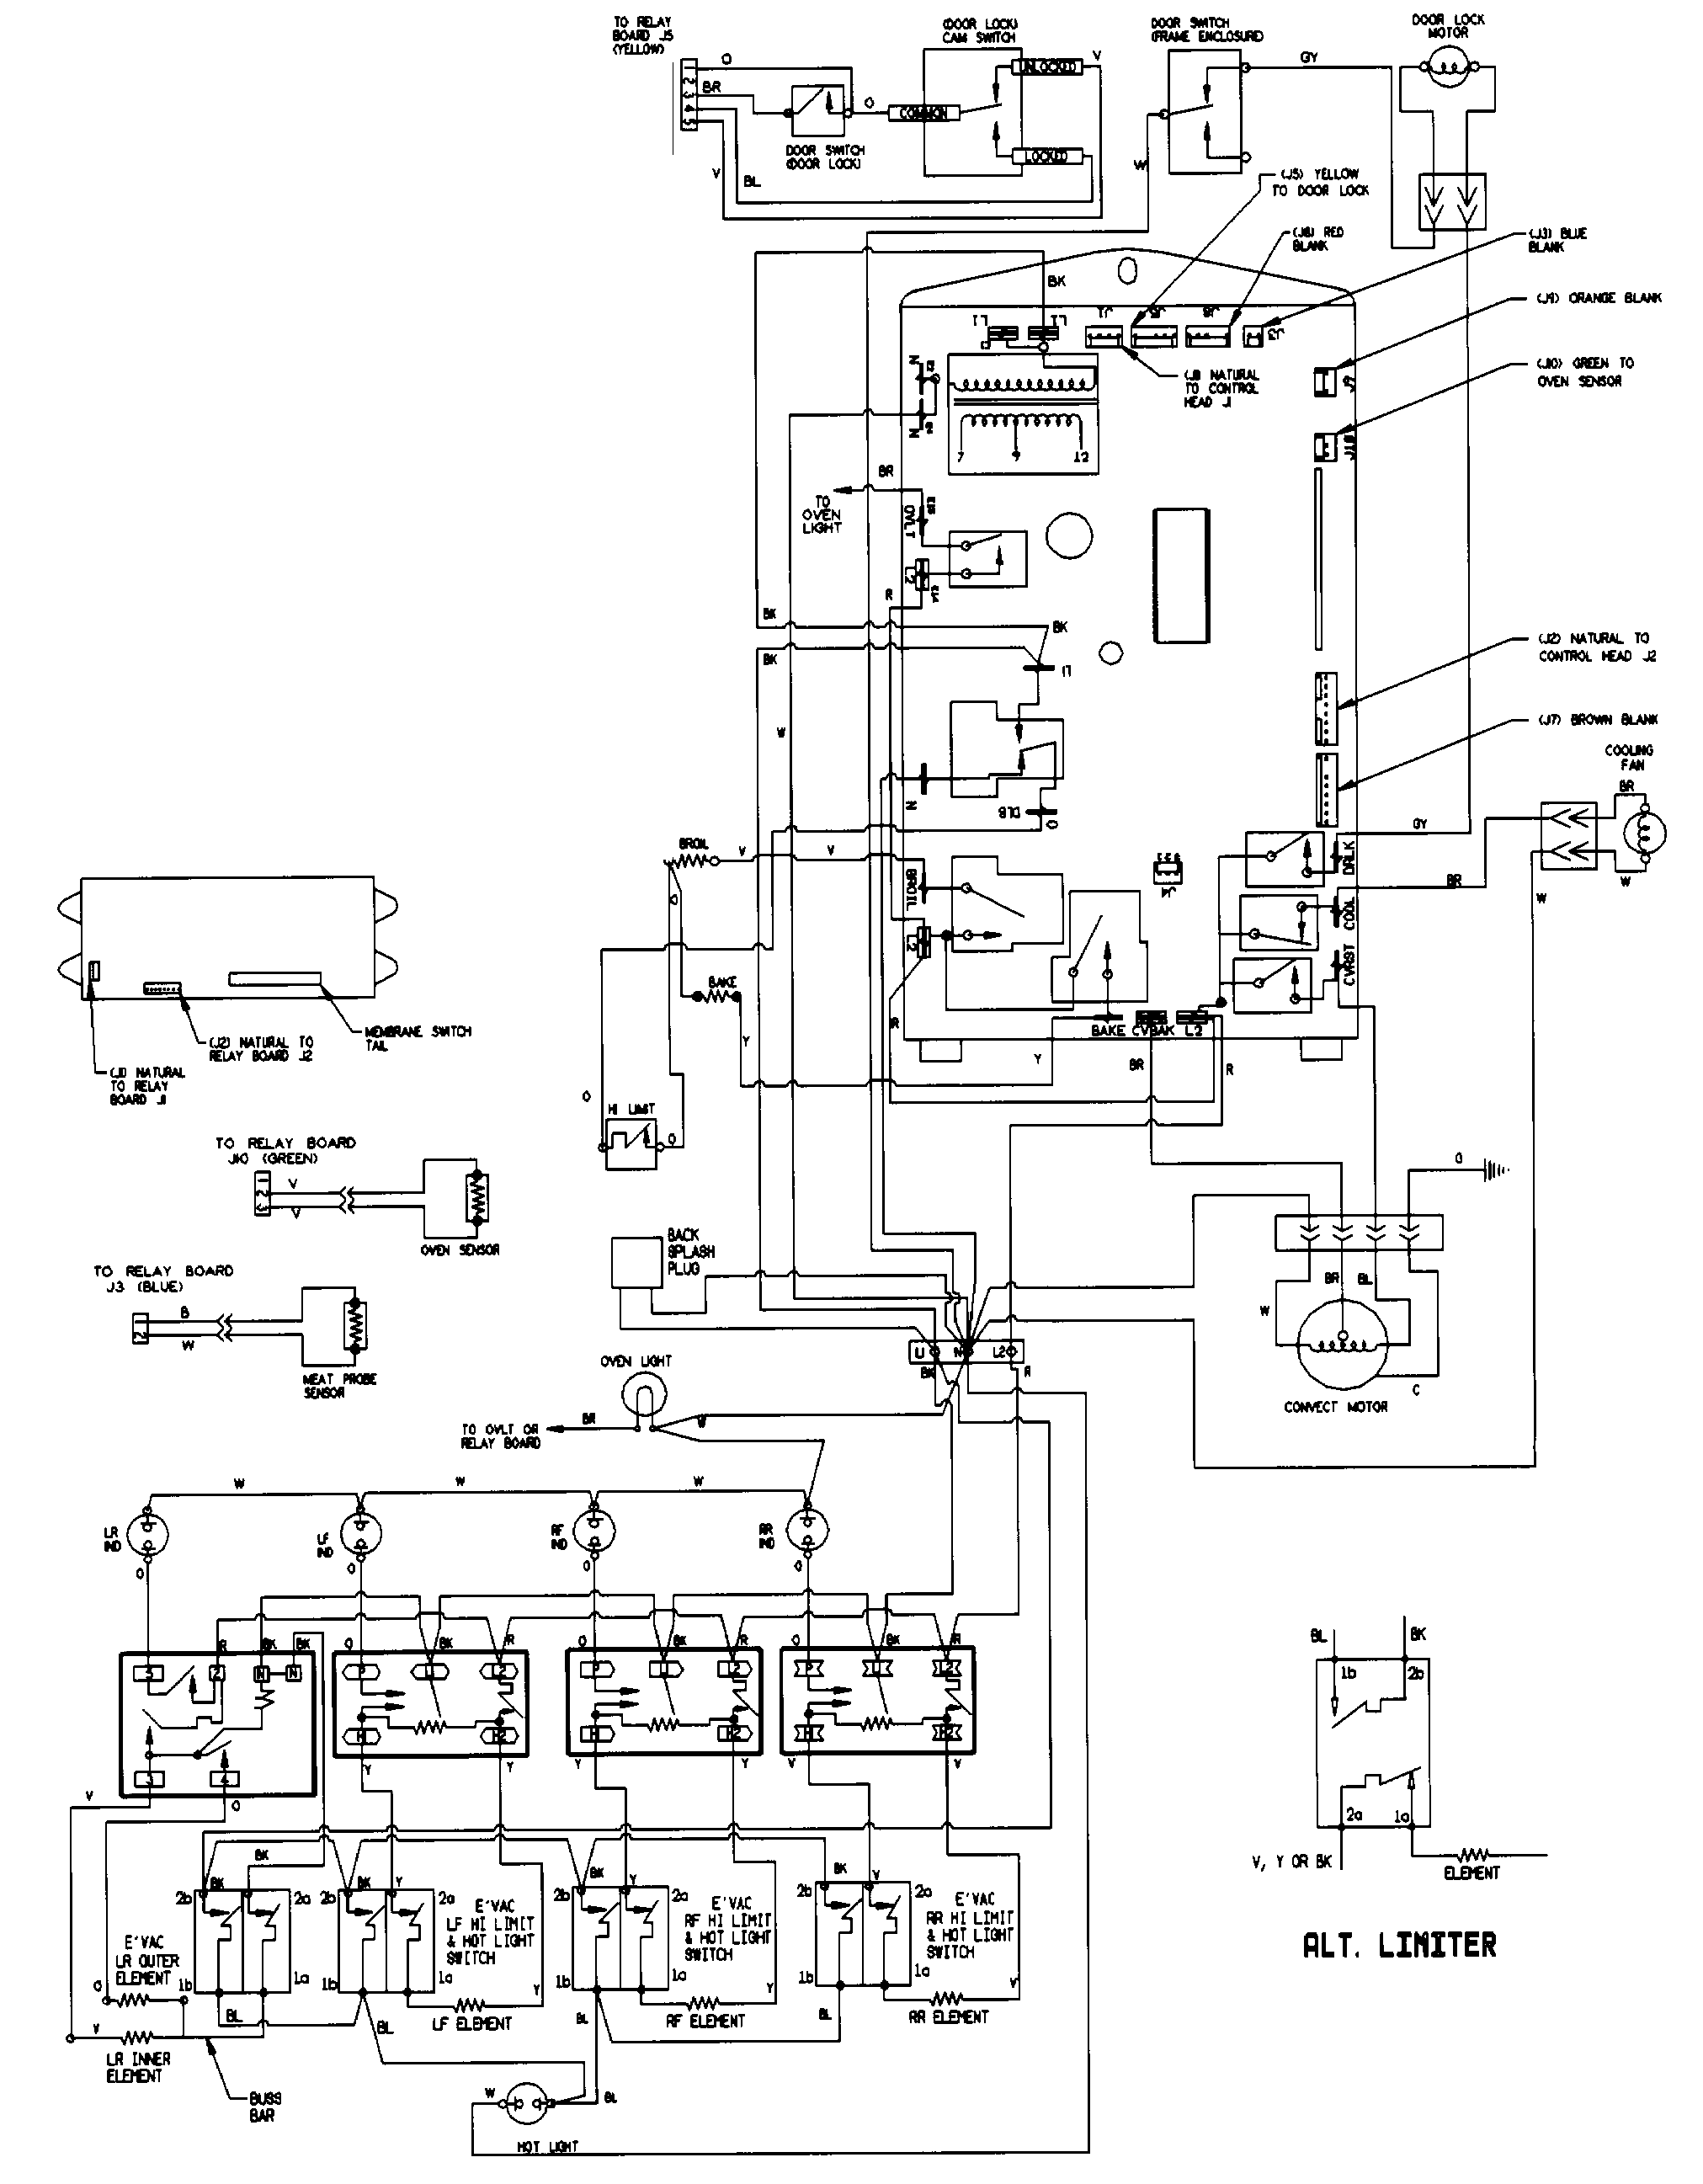 wire diagram ge wall oven clock analog [ 2023 x 2594 Pixel ]